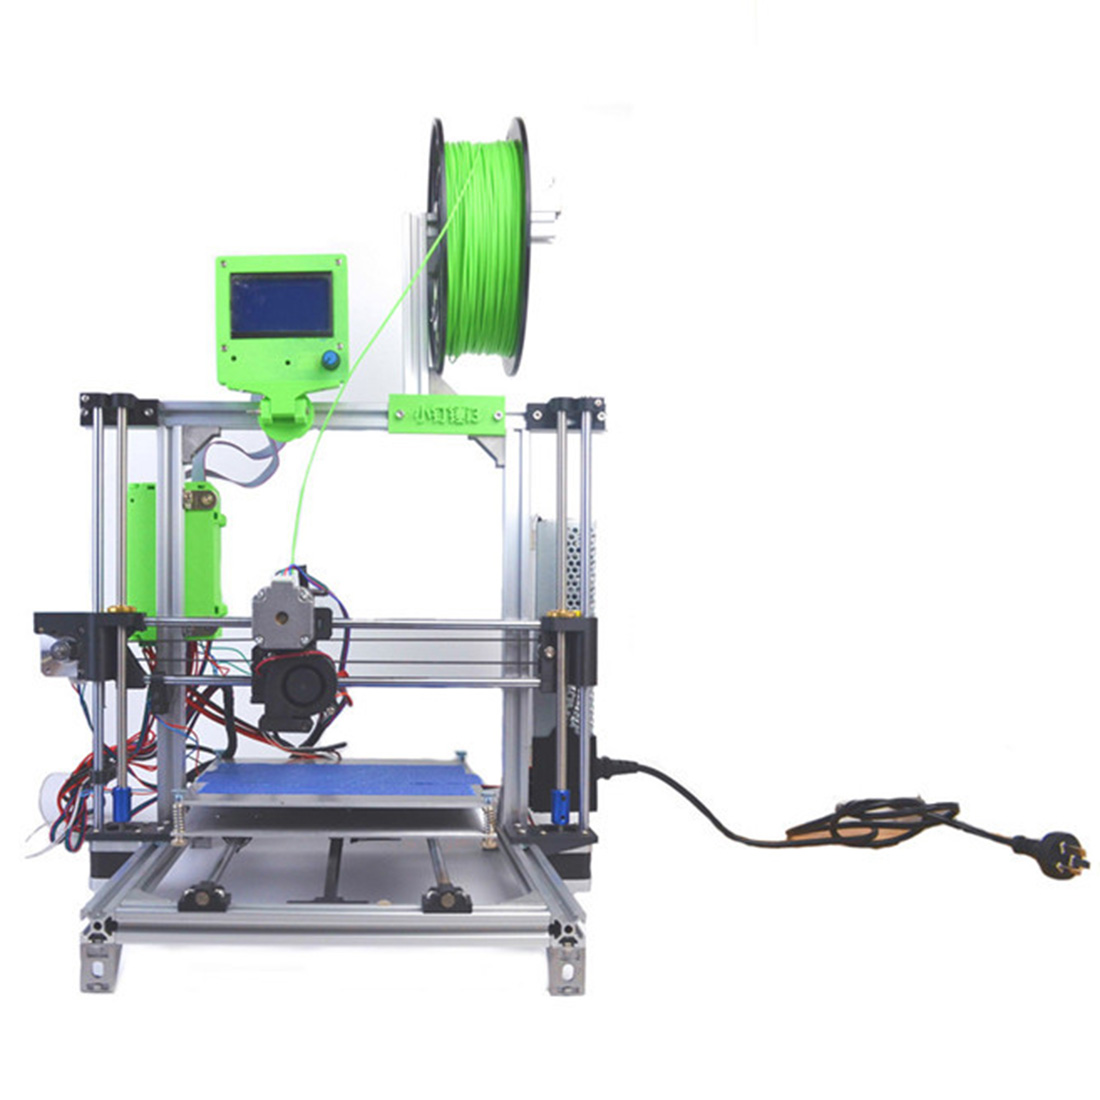 Hot Sale Discovery Toys DIY 3D Printer Upgraded Aluminum Frame Printing Kit Model Educational Toy Gift For Children Kids Adults